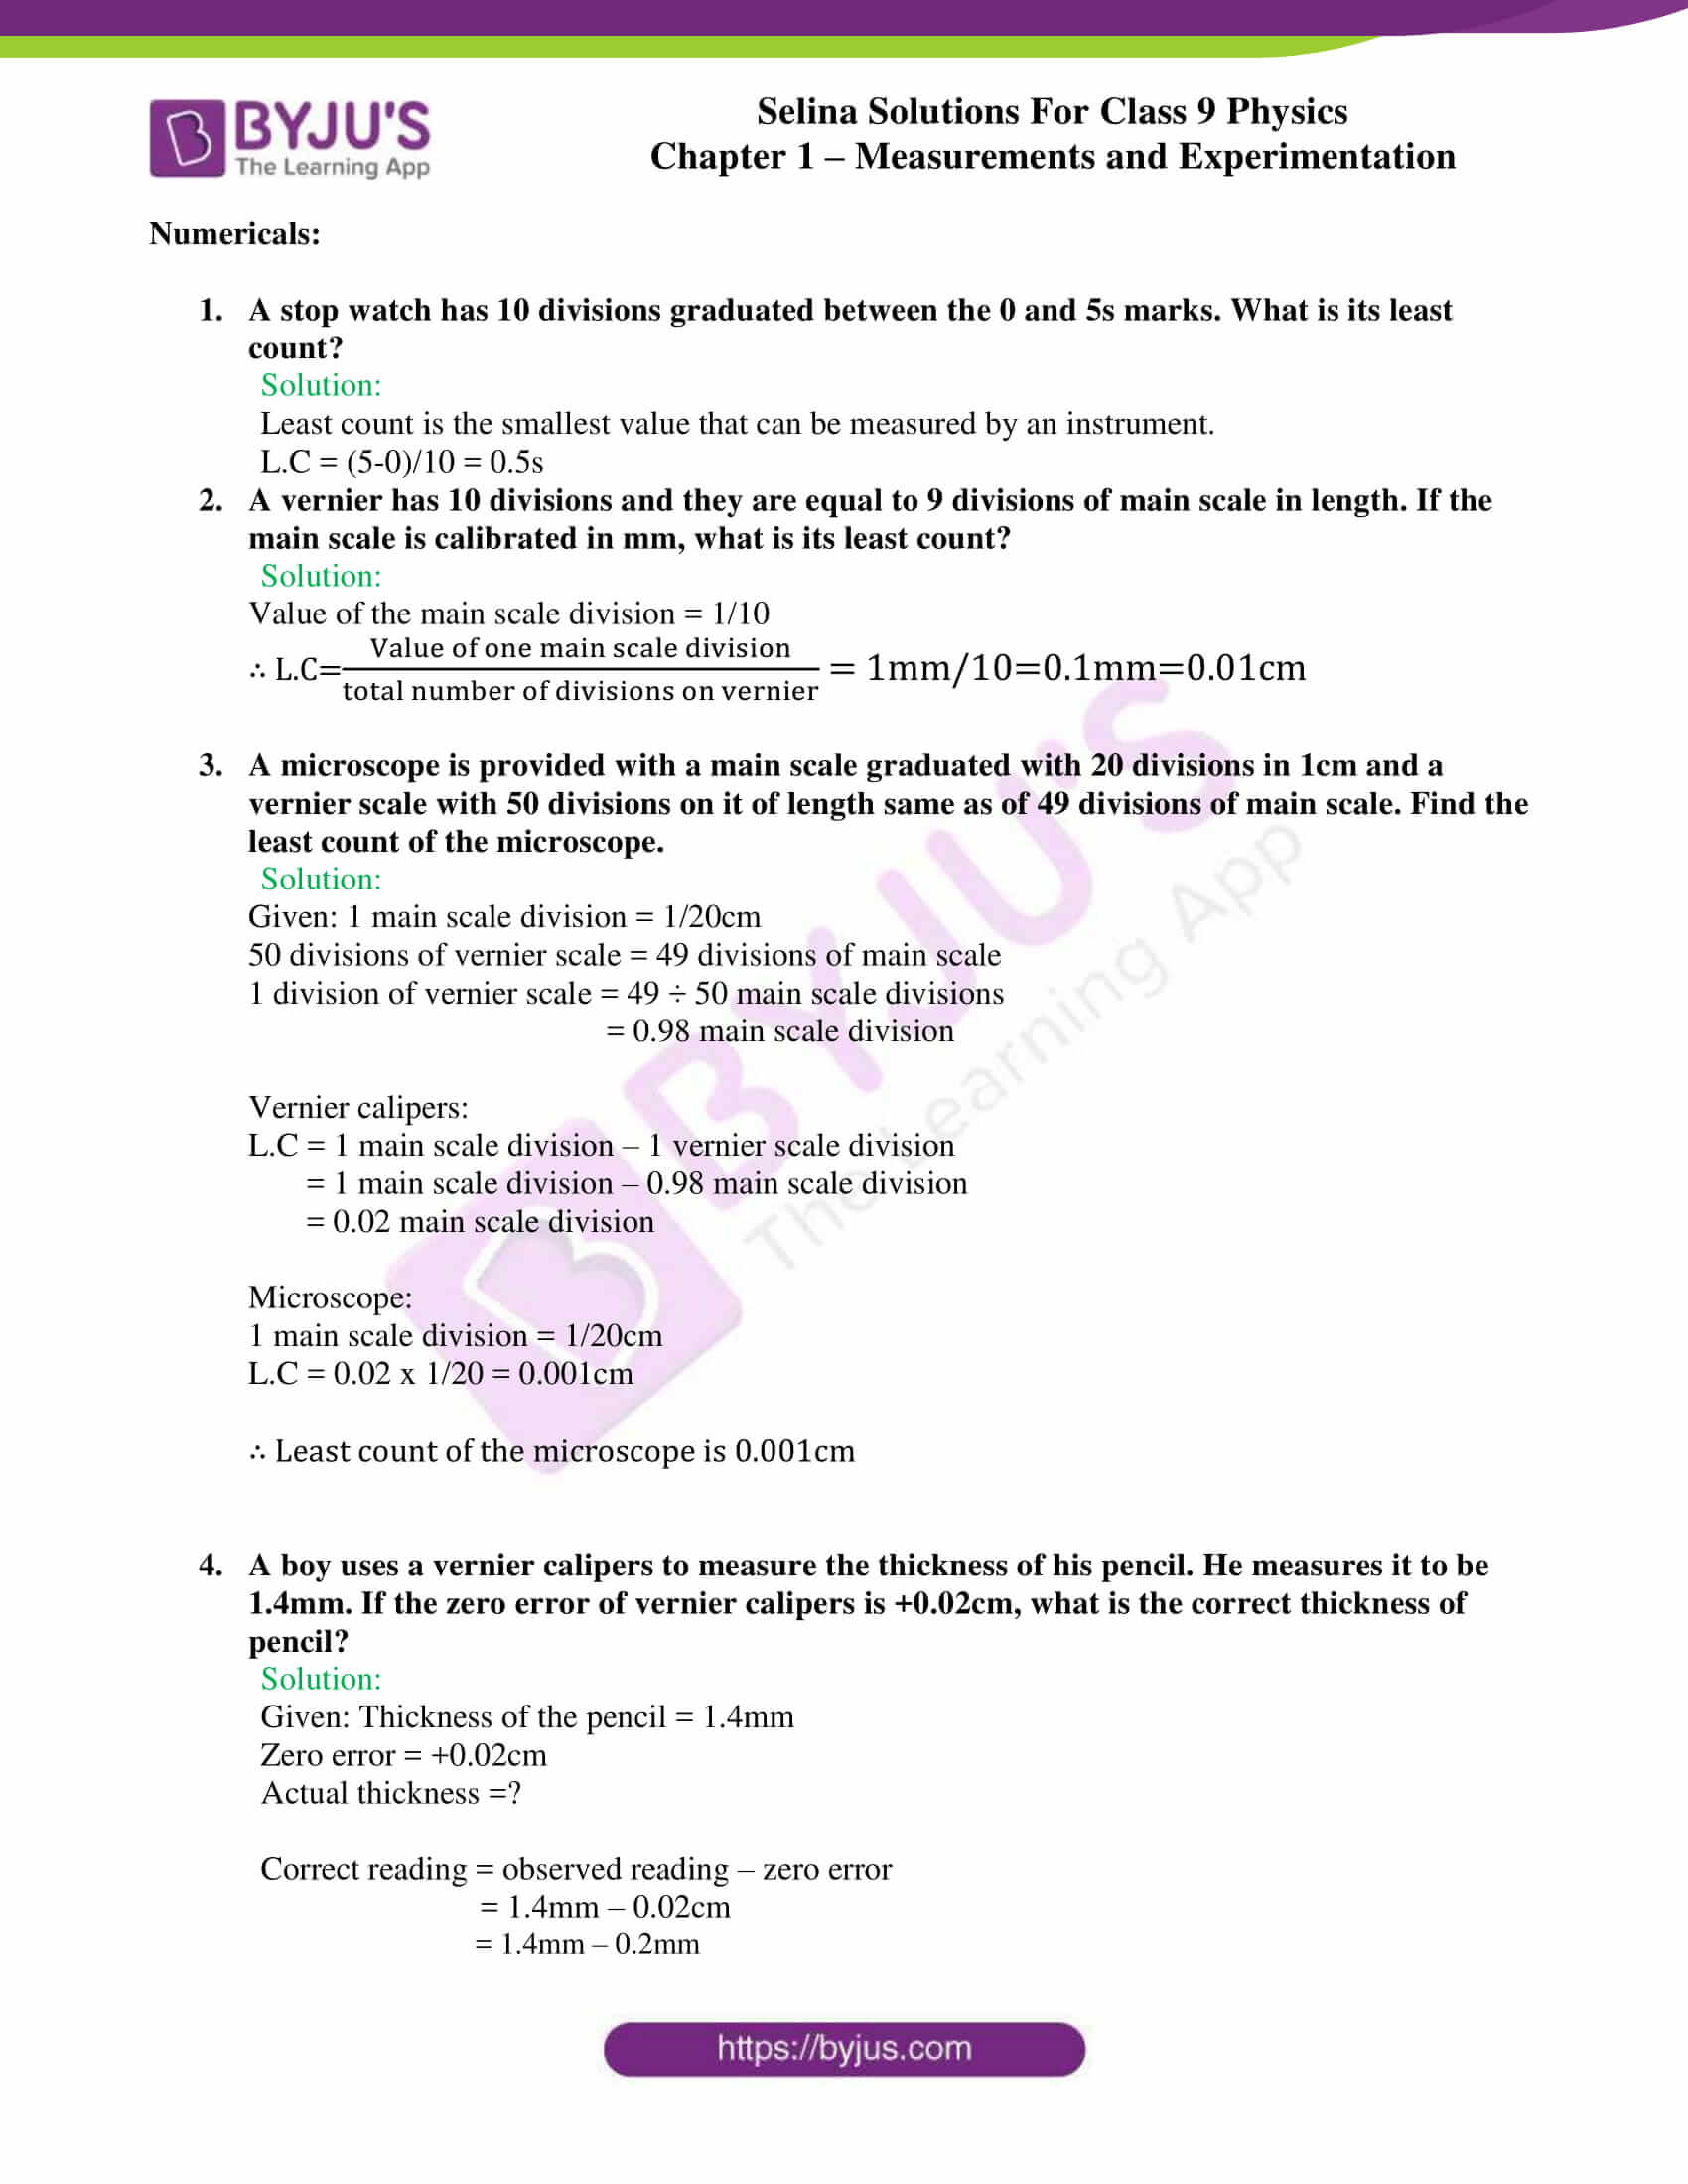 selina solutions class 9 physics chapter 1 Measurements and Experimentation part 20